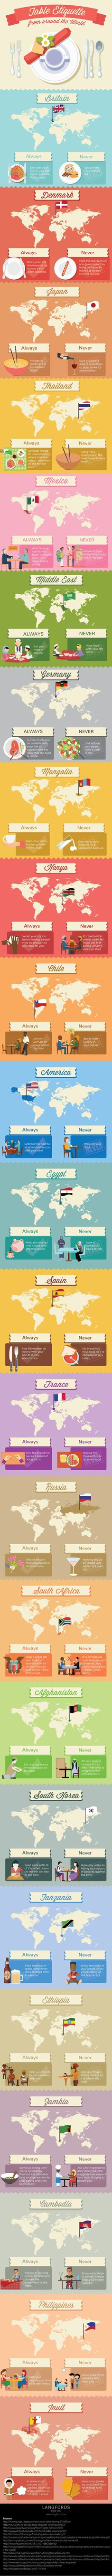 This Langsford Infographic On Table Etiquette From Around The World Will Prepare You For Your Next Vacation